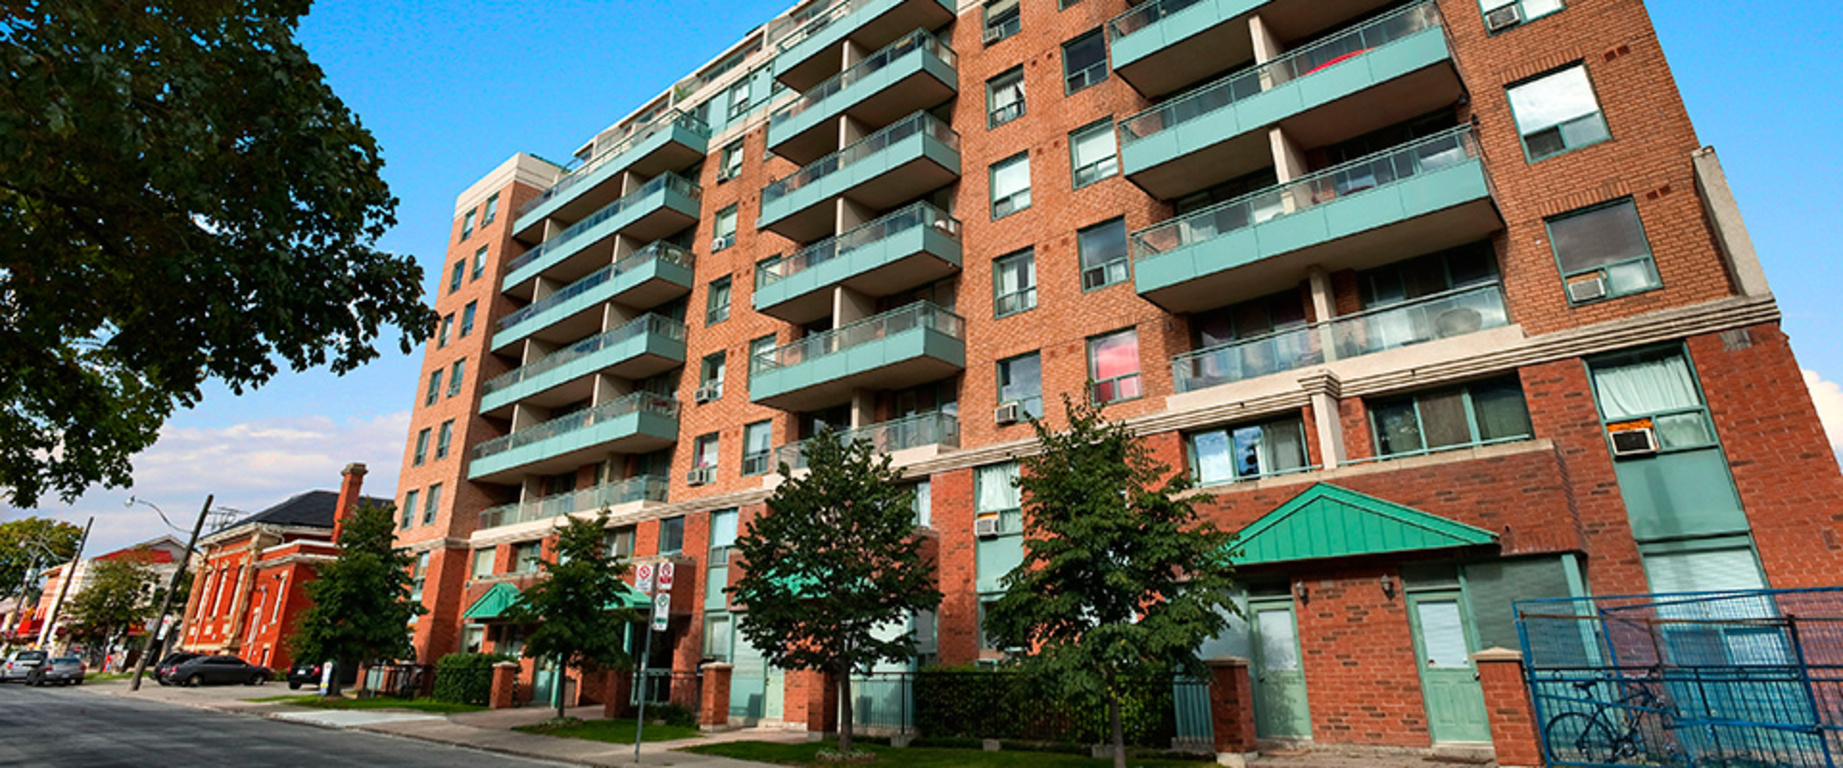 Toronto Central 2 bedroom Apartment For Rent